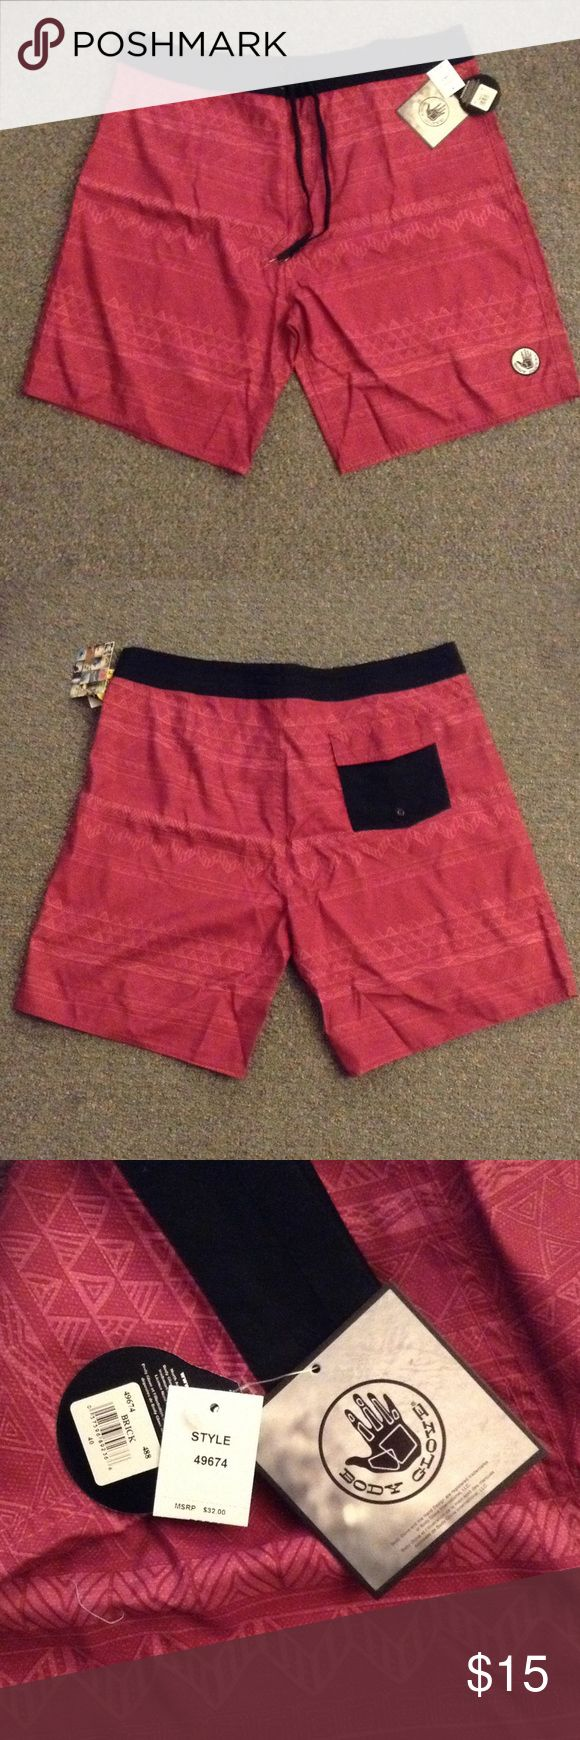 Men's Swimsuit Shorts NWT Brick red men's swimming shorts. Black waistband secured with Velcro and double ties. New with tags. Single back Velcro pocket. Size 40. 100% polyester. Body Glove Swim Board Shorts